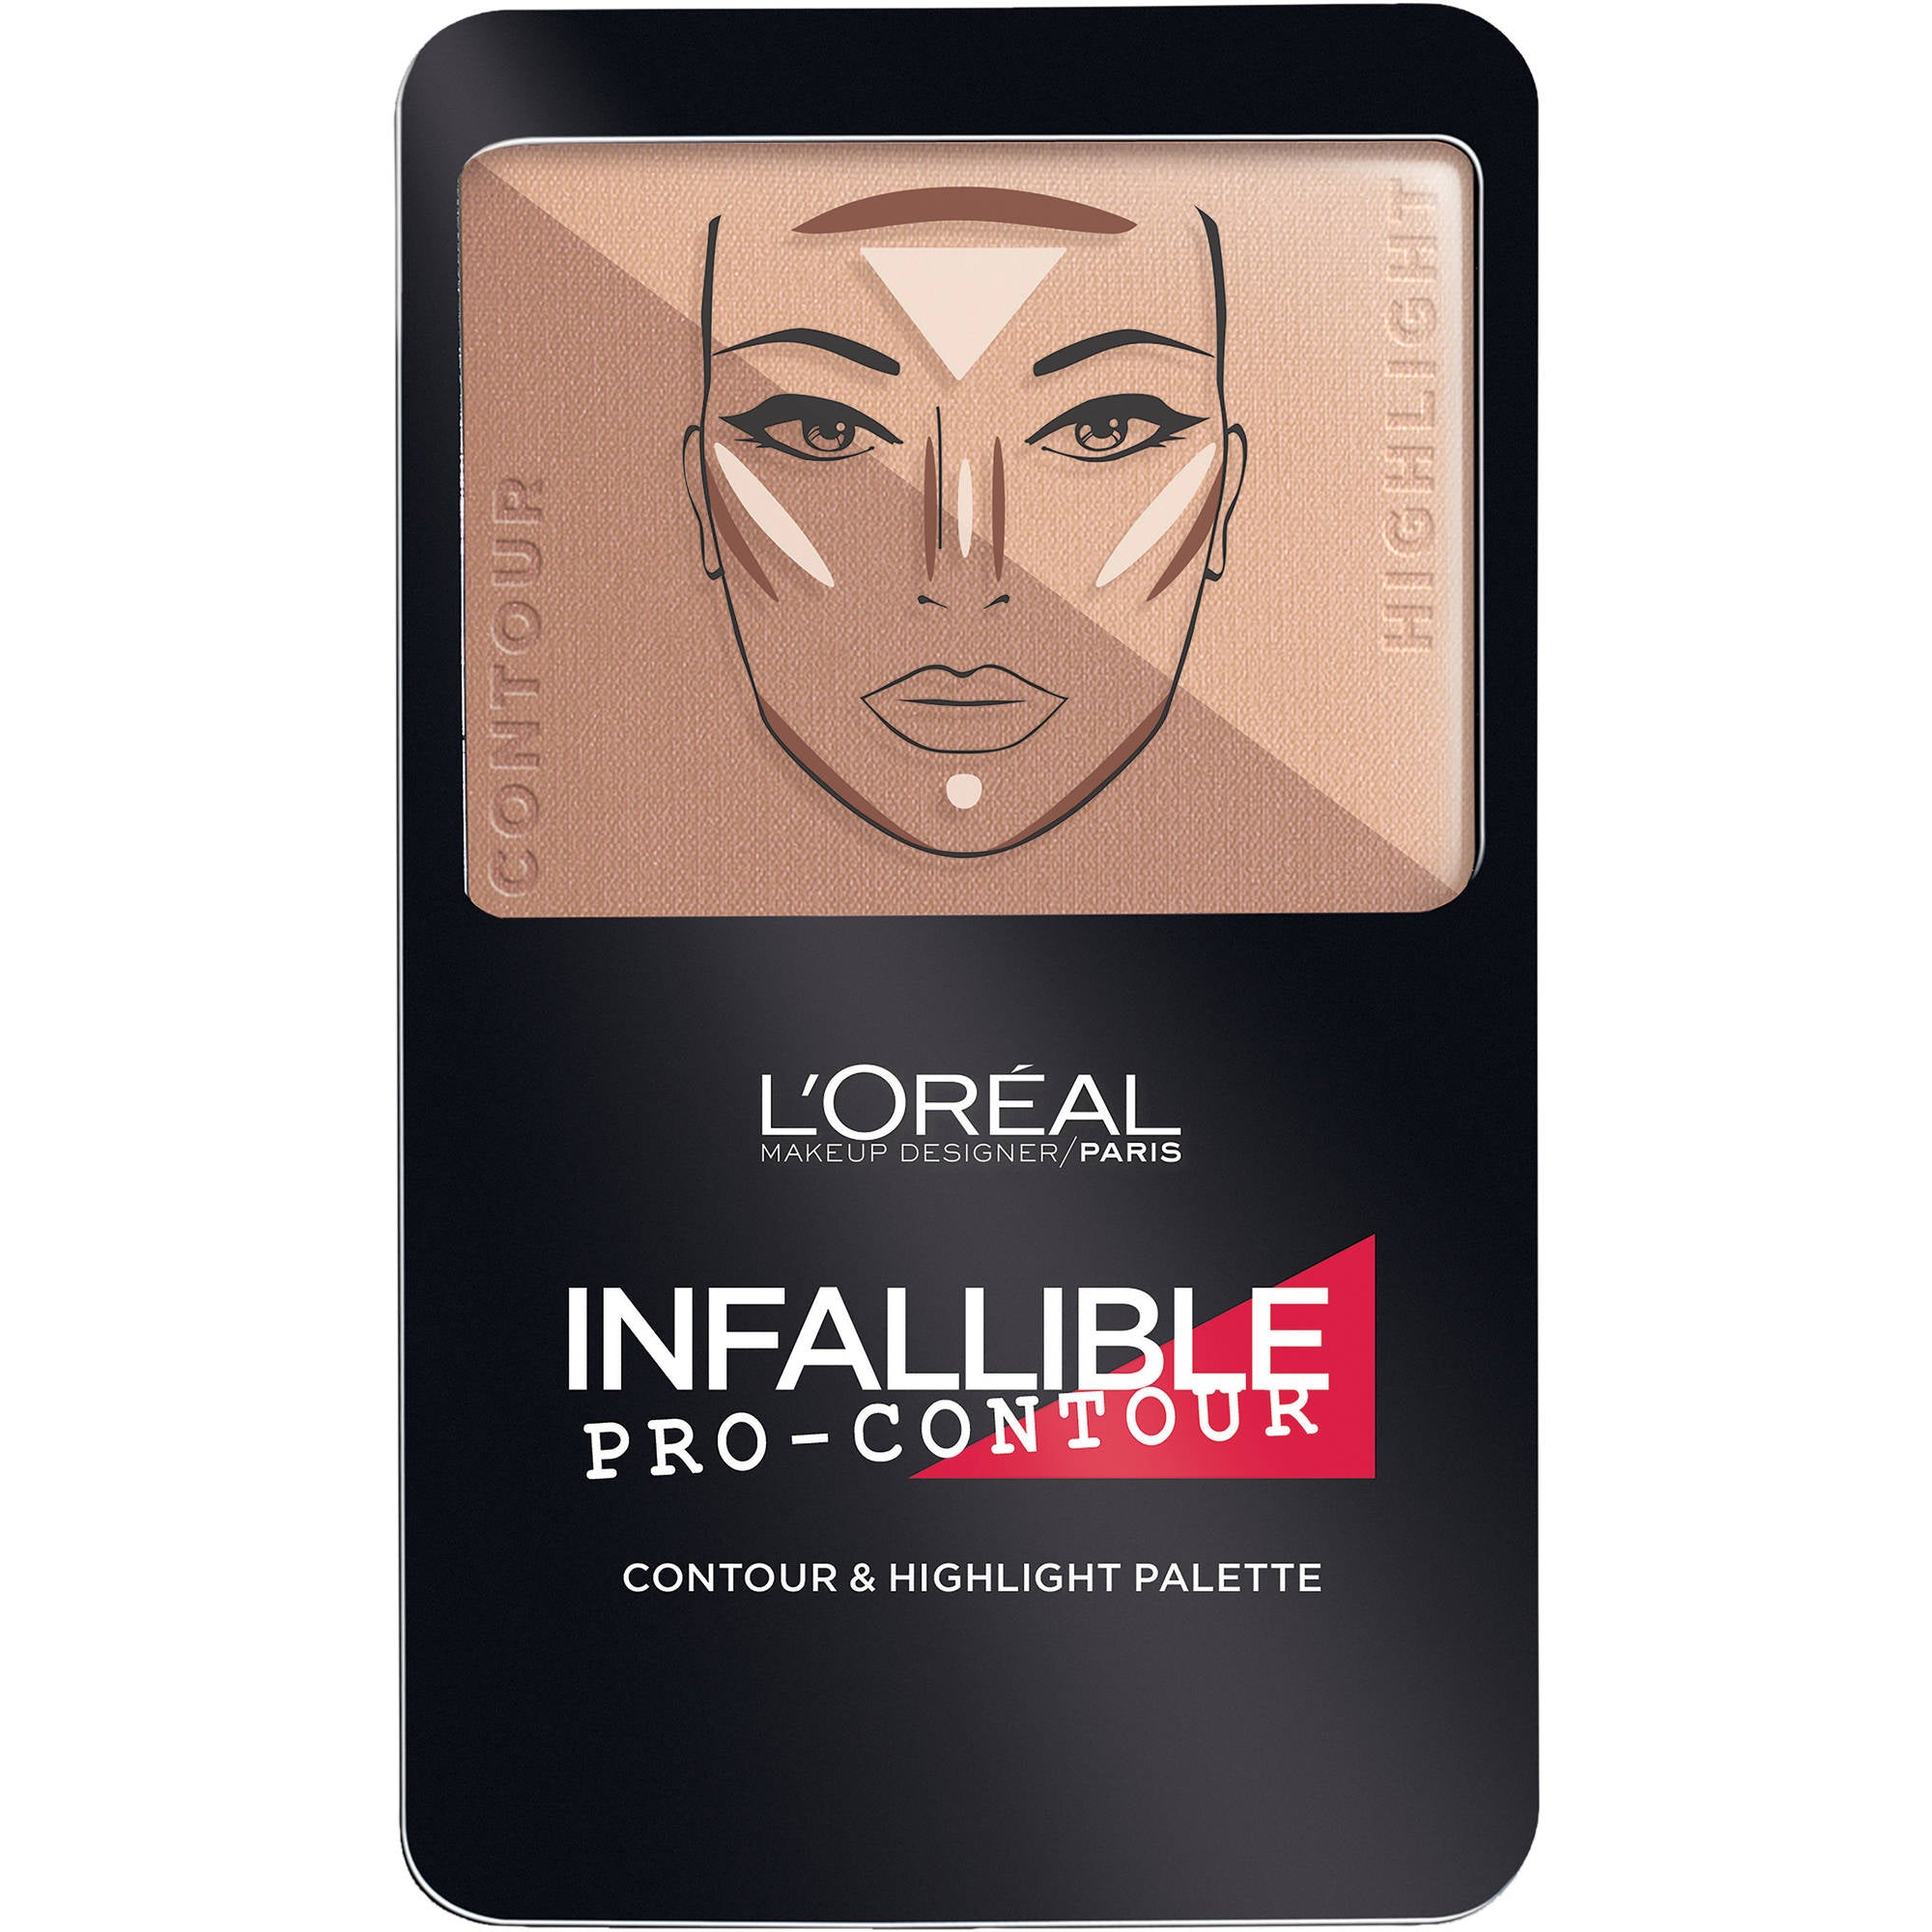 WHOLESALE LOREAL INFALLIBLE PRO-CONTOUR CONTOUR & HIGHLIGHT PALETTE - DEEP 815 - 48 PIECE LOT